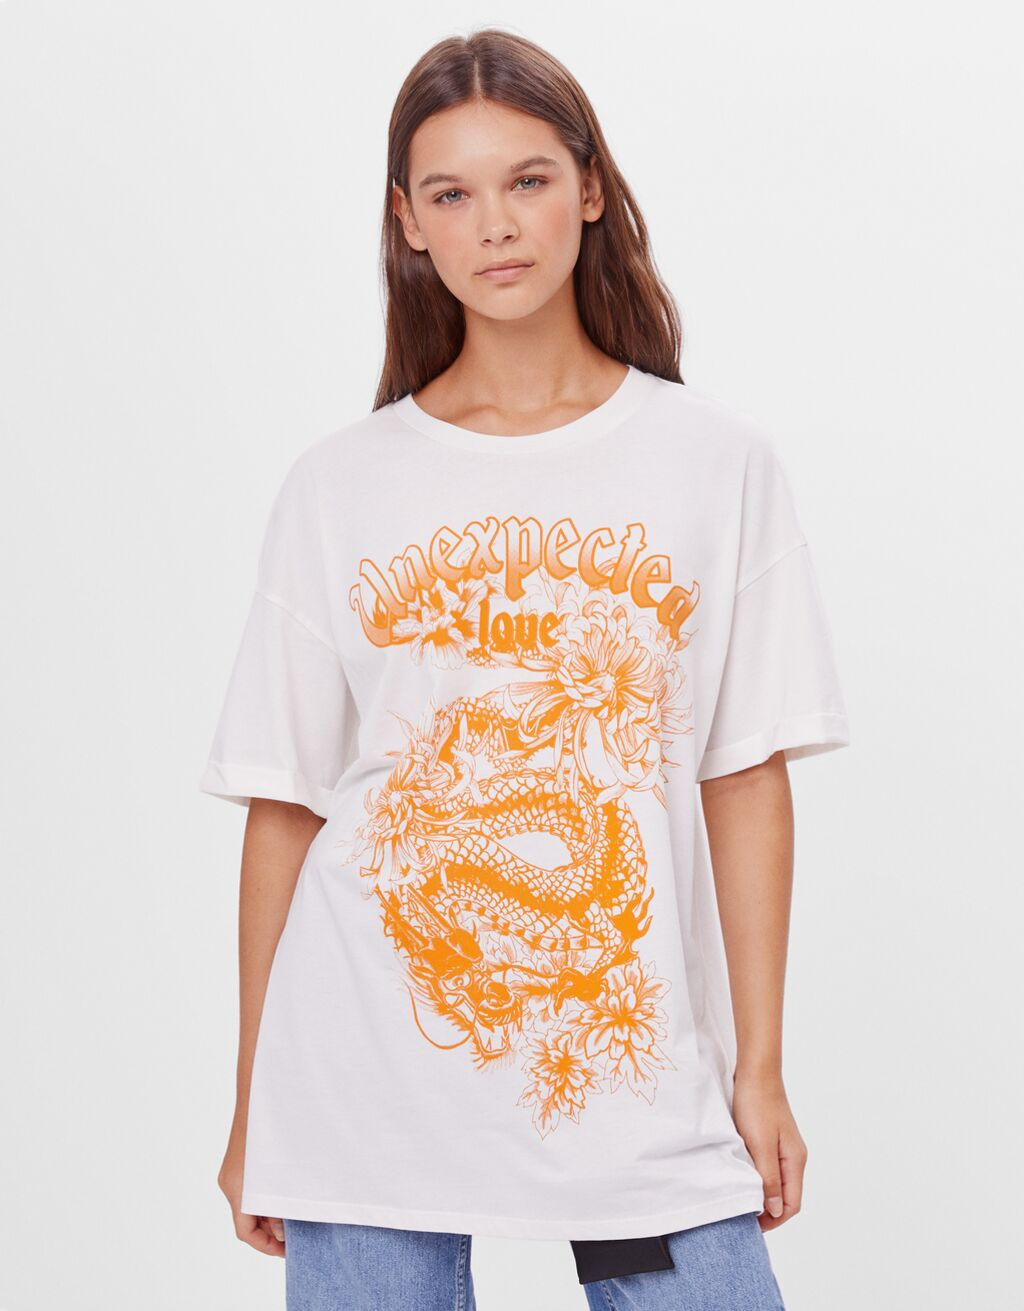 T-shirt with dragon print